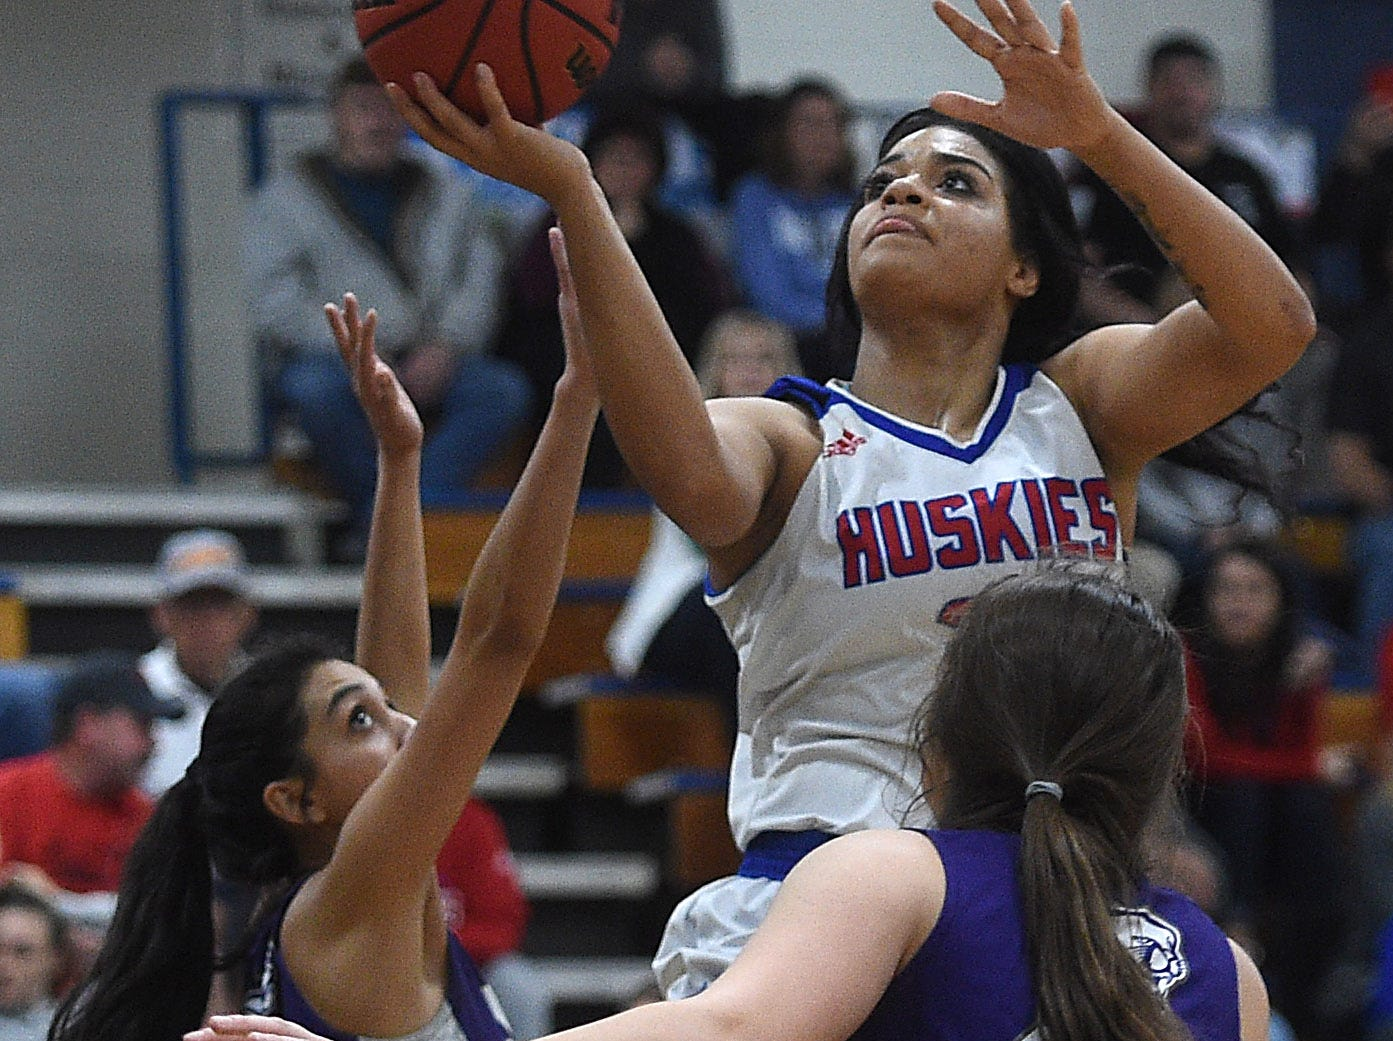 Reno's Kaitlynn Biassou shoots while taking on Spanish Springs during the Northern Region Basketball Championship game in Carson City on Feb. 23, 2019.